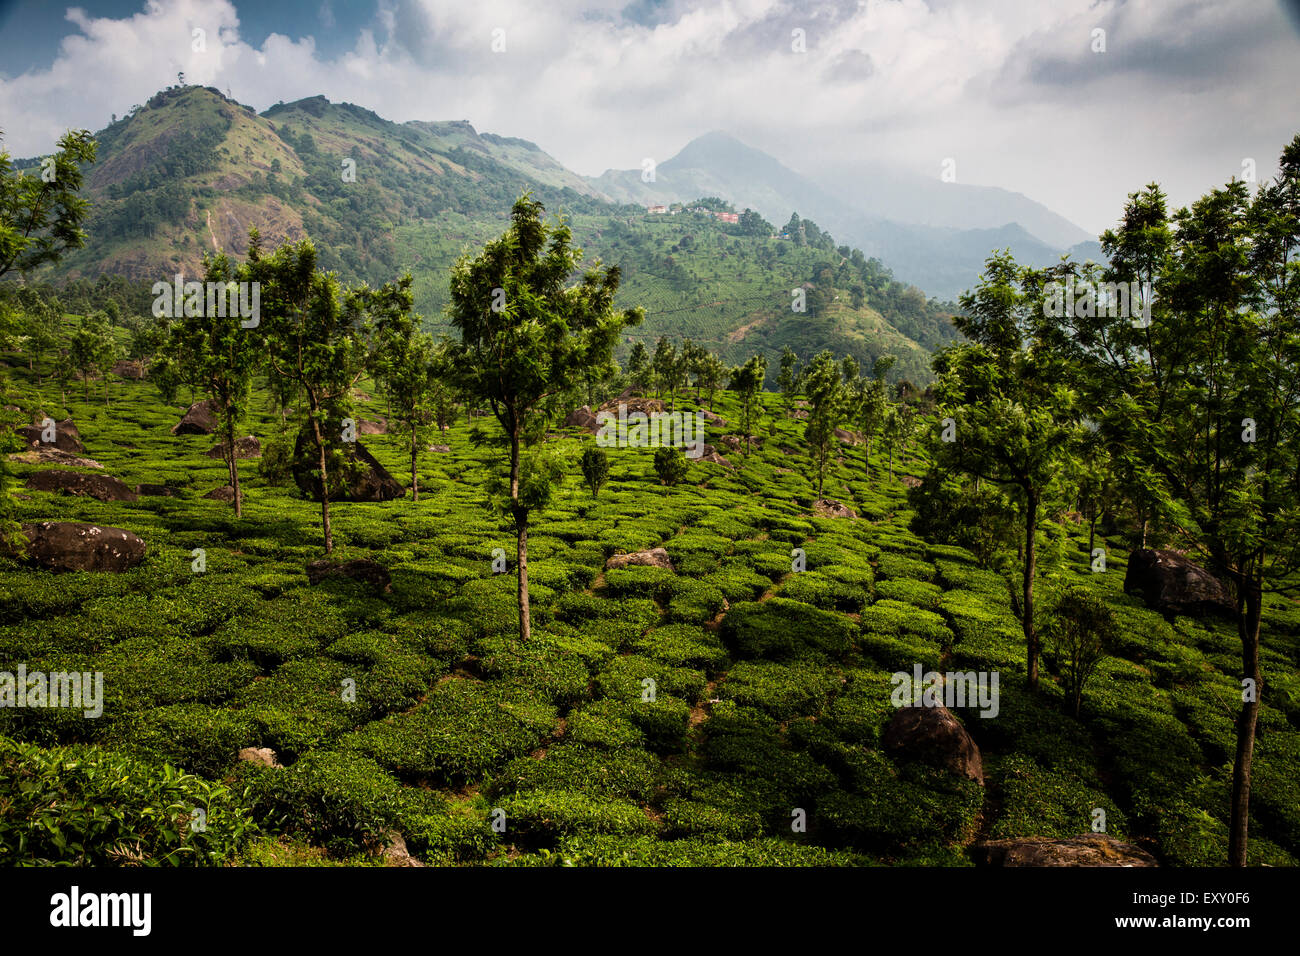 Tea plantation near Munnar, Kerala, India. The Western Ghats are in the background - Stock Image